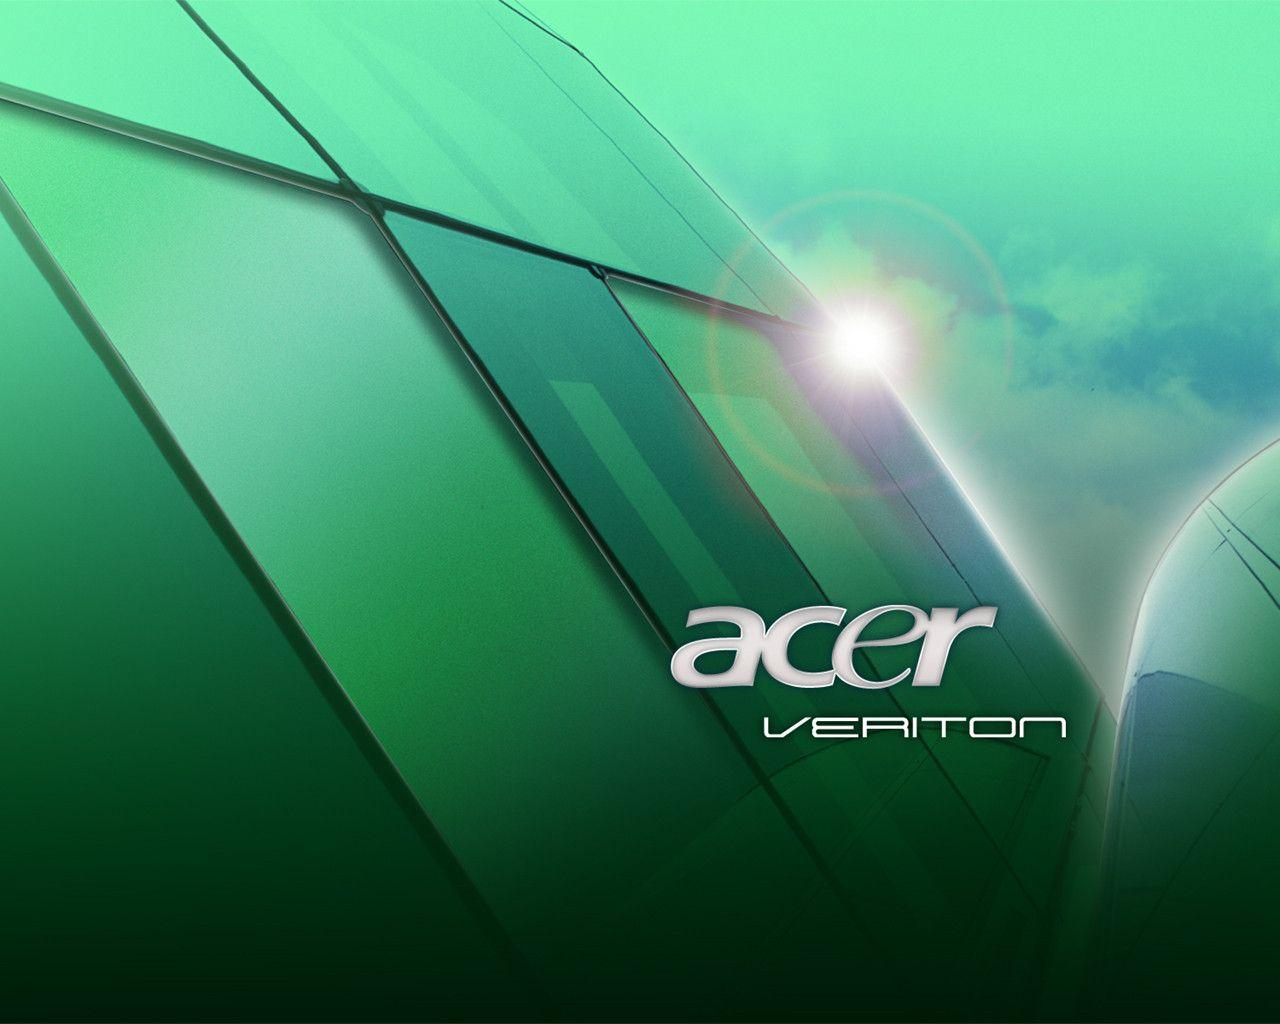 Acer Wallpapers 2016 - Wallpaper Cave